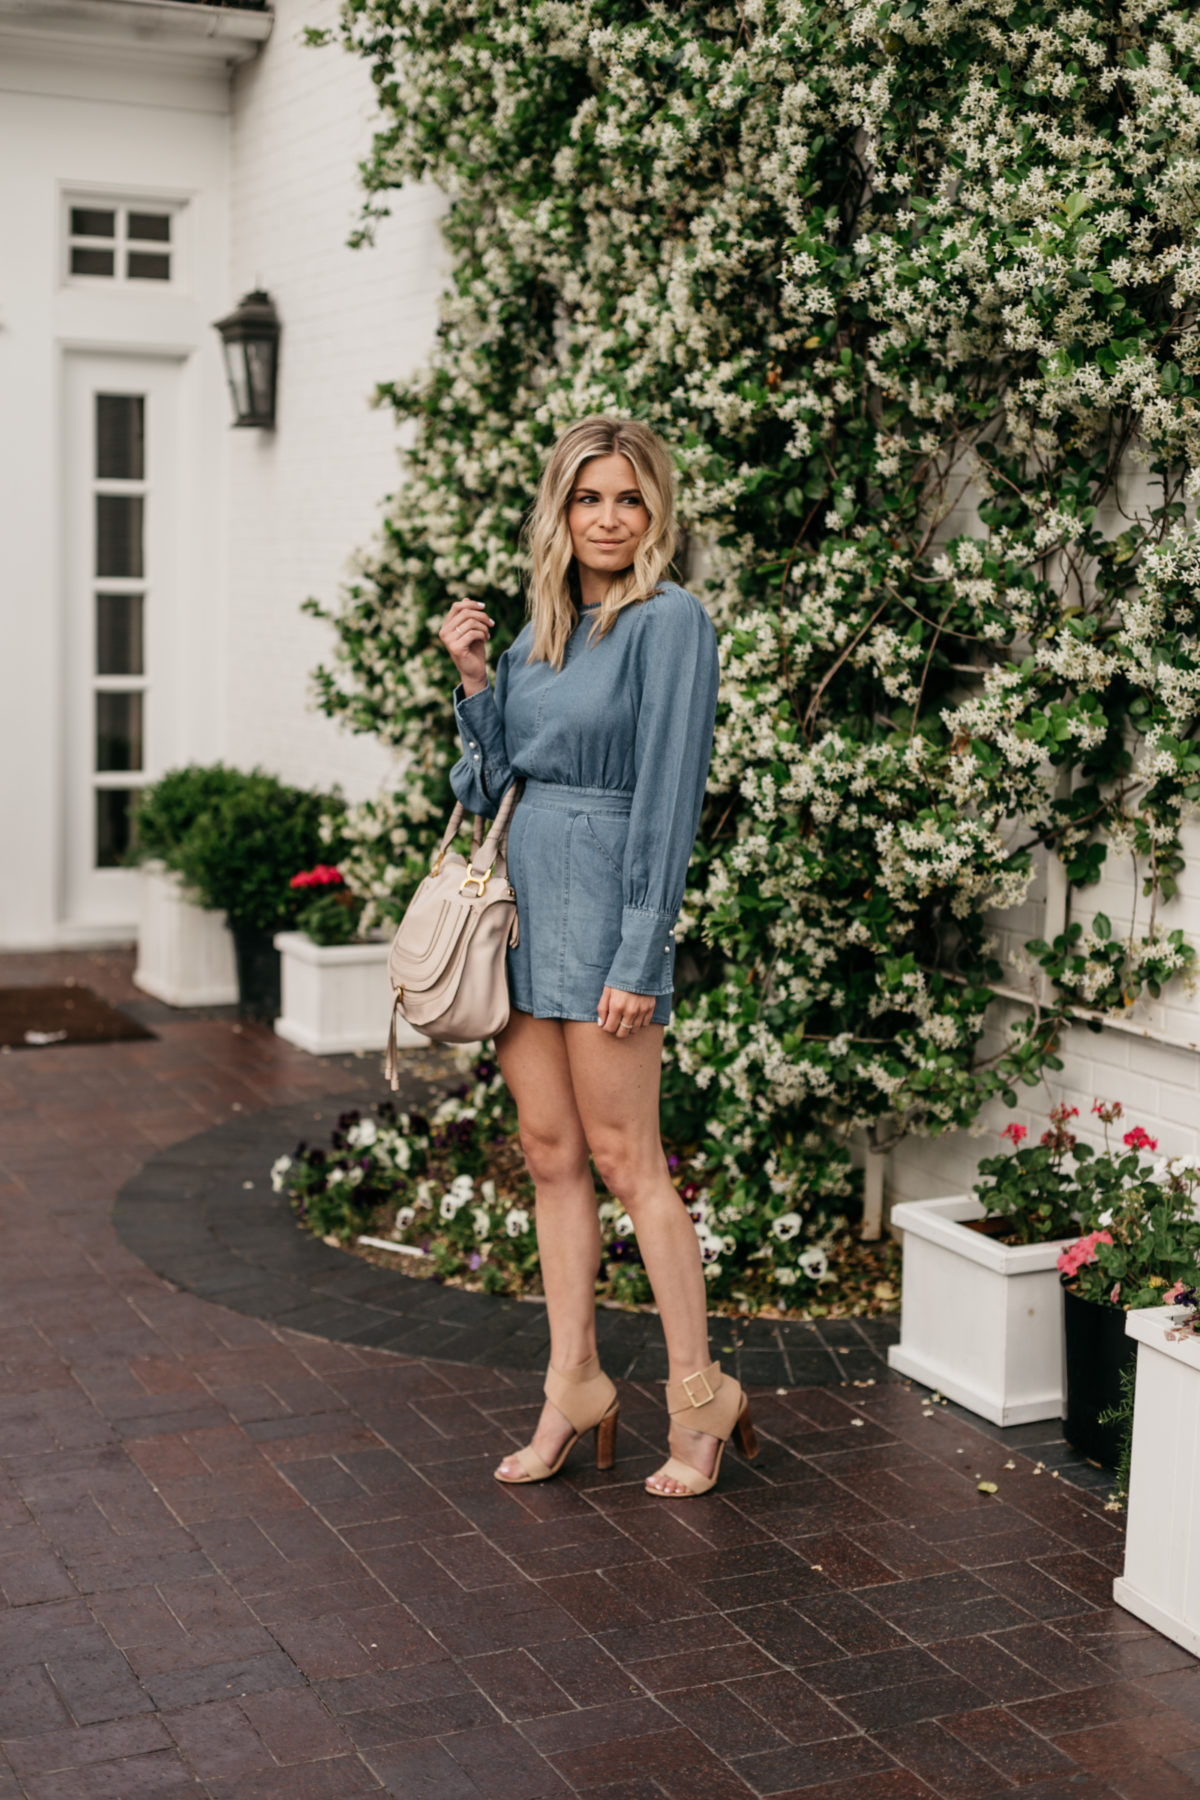 Spring Rompers on the blog - Brooke's outfit details: Denim Romper // Nude Block Heels // Chloe Marcie Handbag